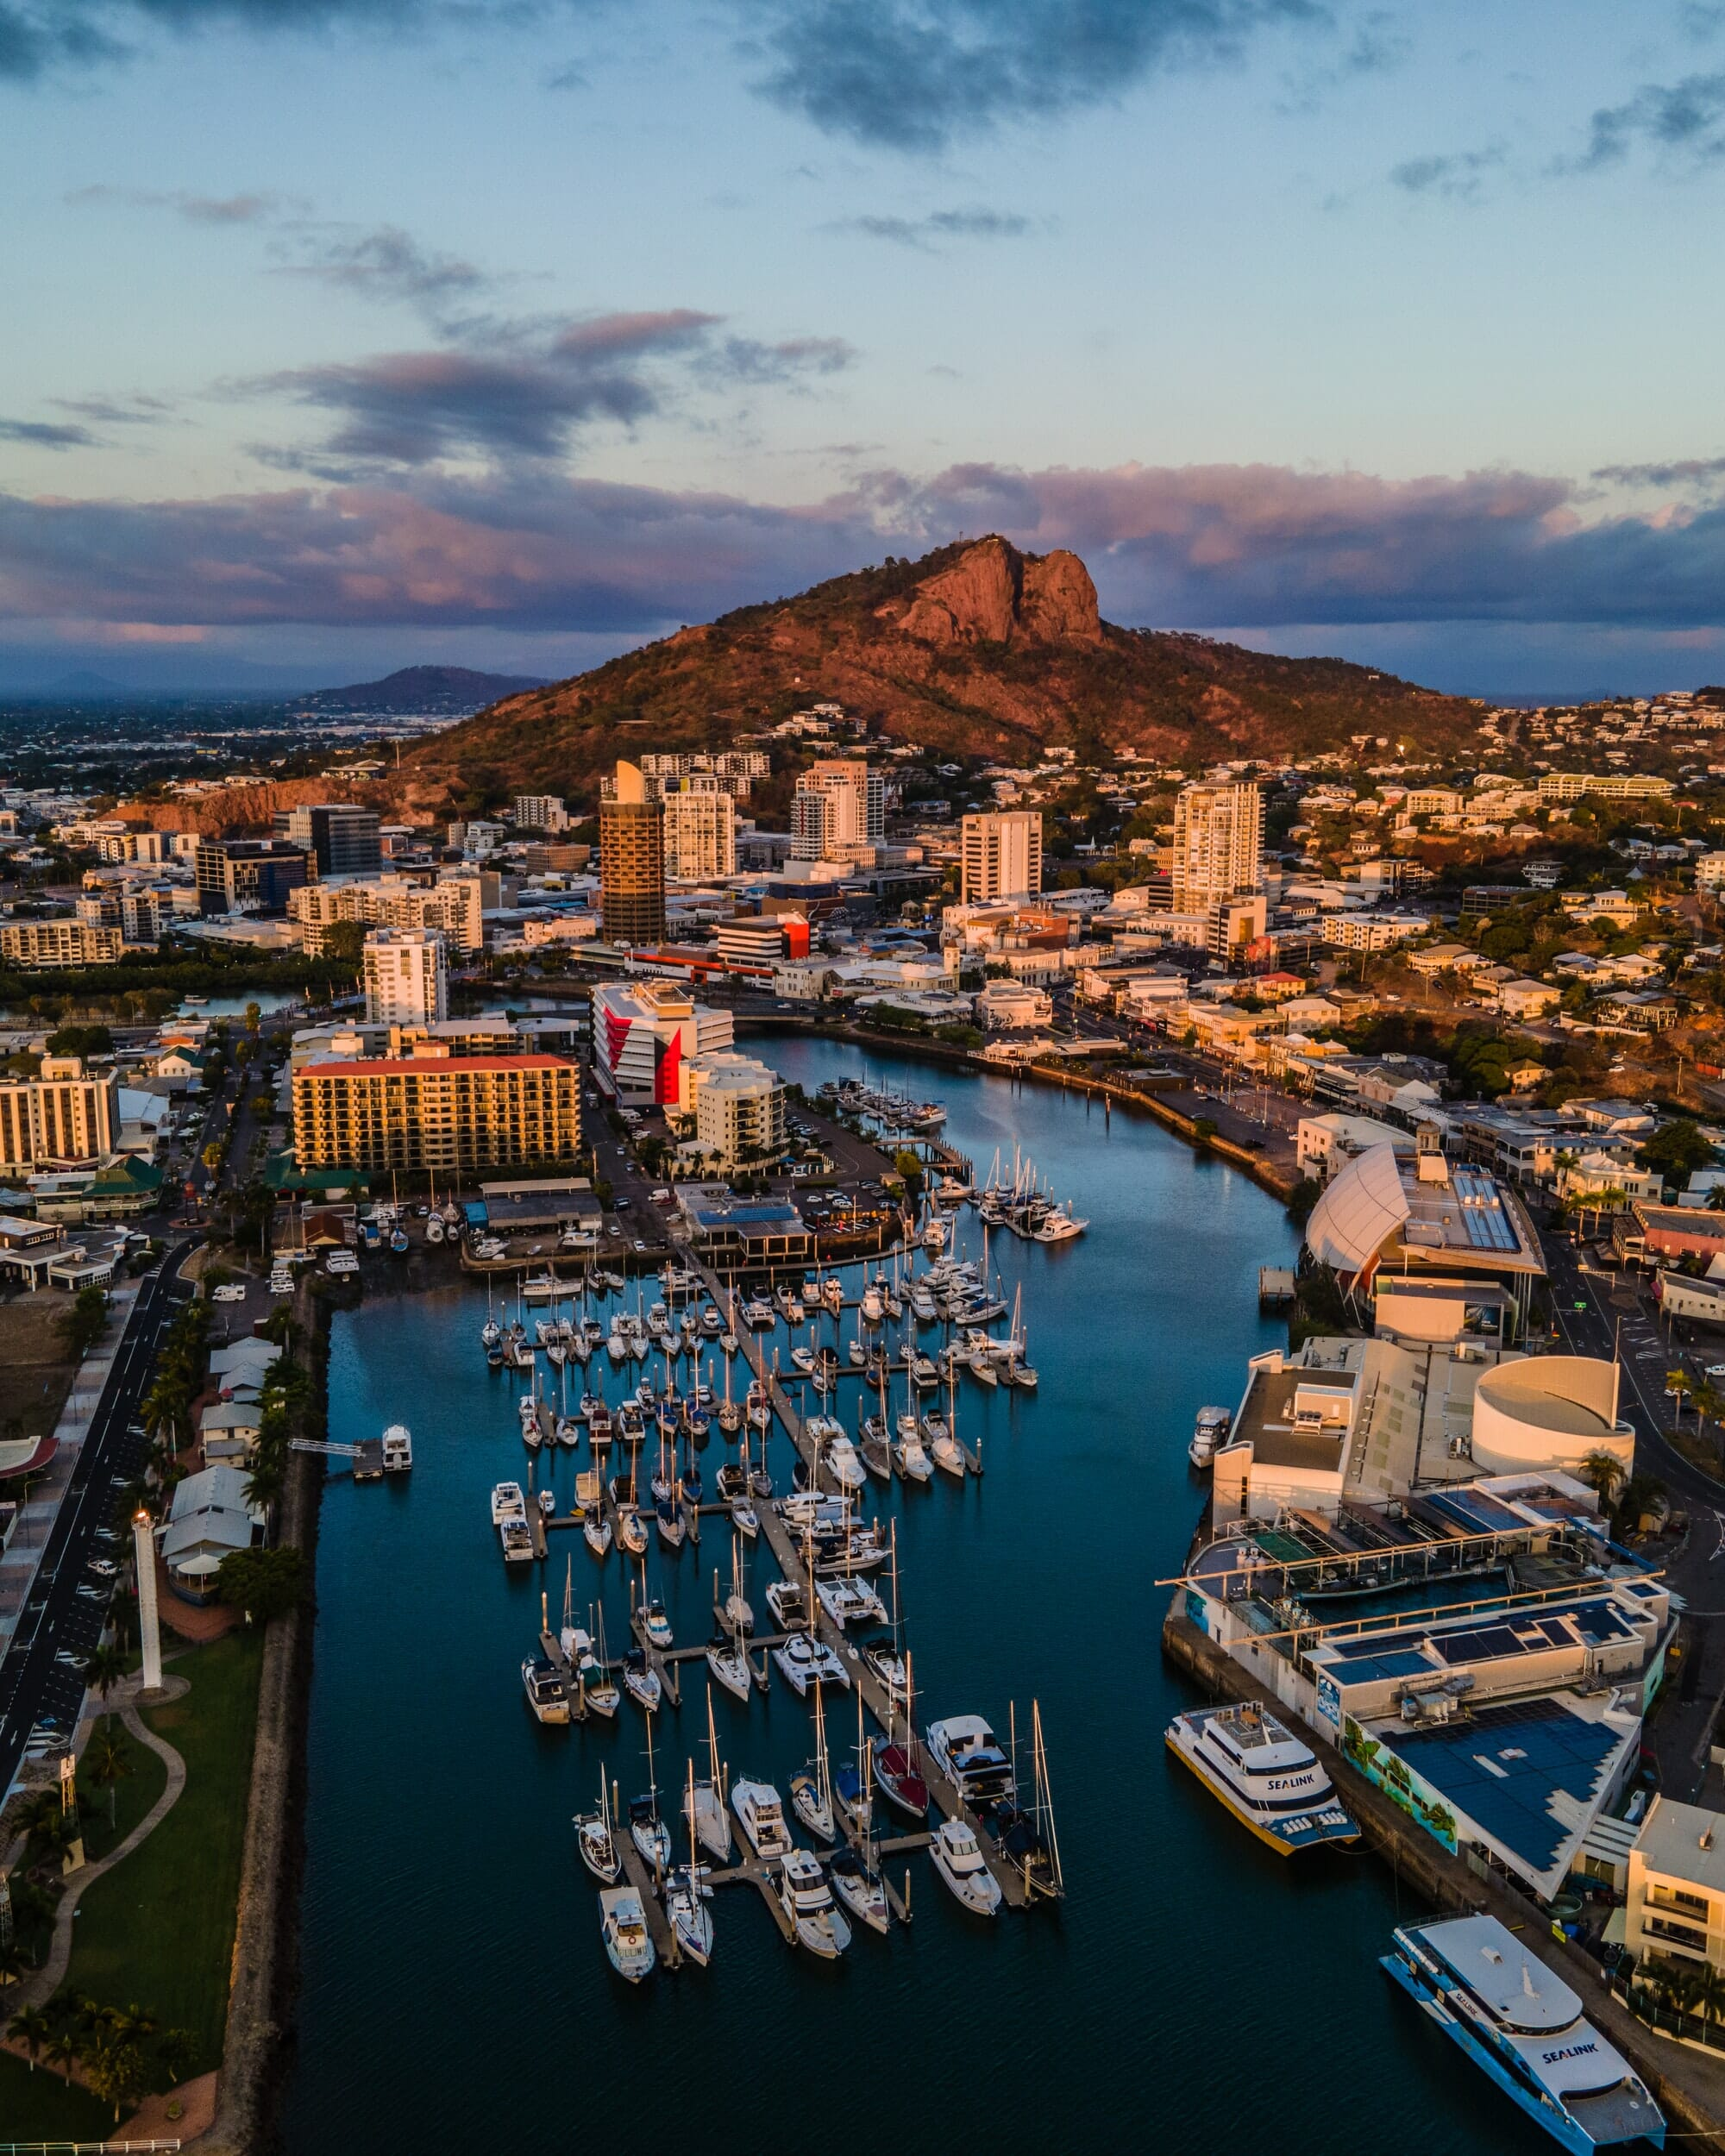 Aerial view of Breakwater Marina in Townsville, QLD, Australia